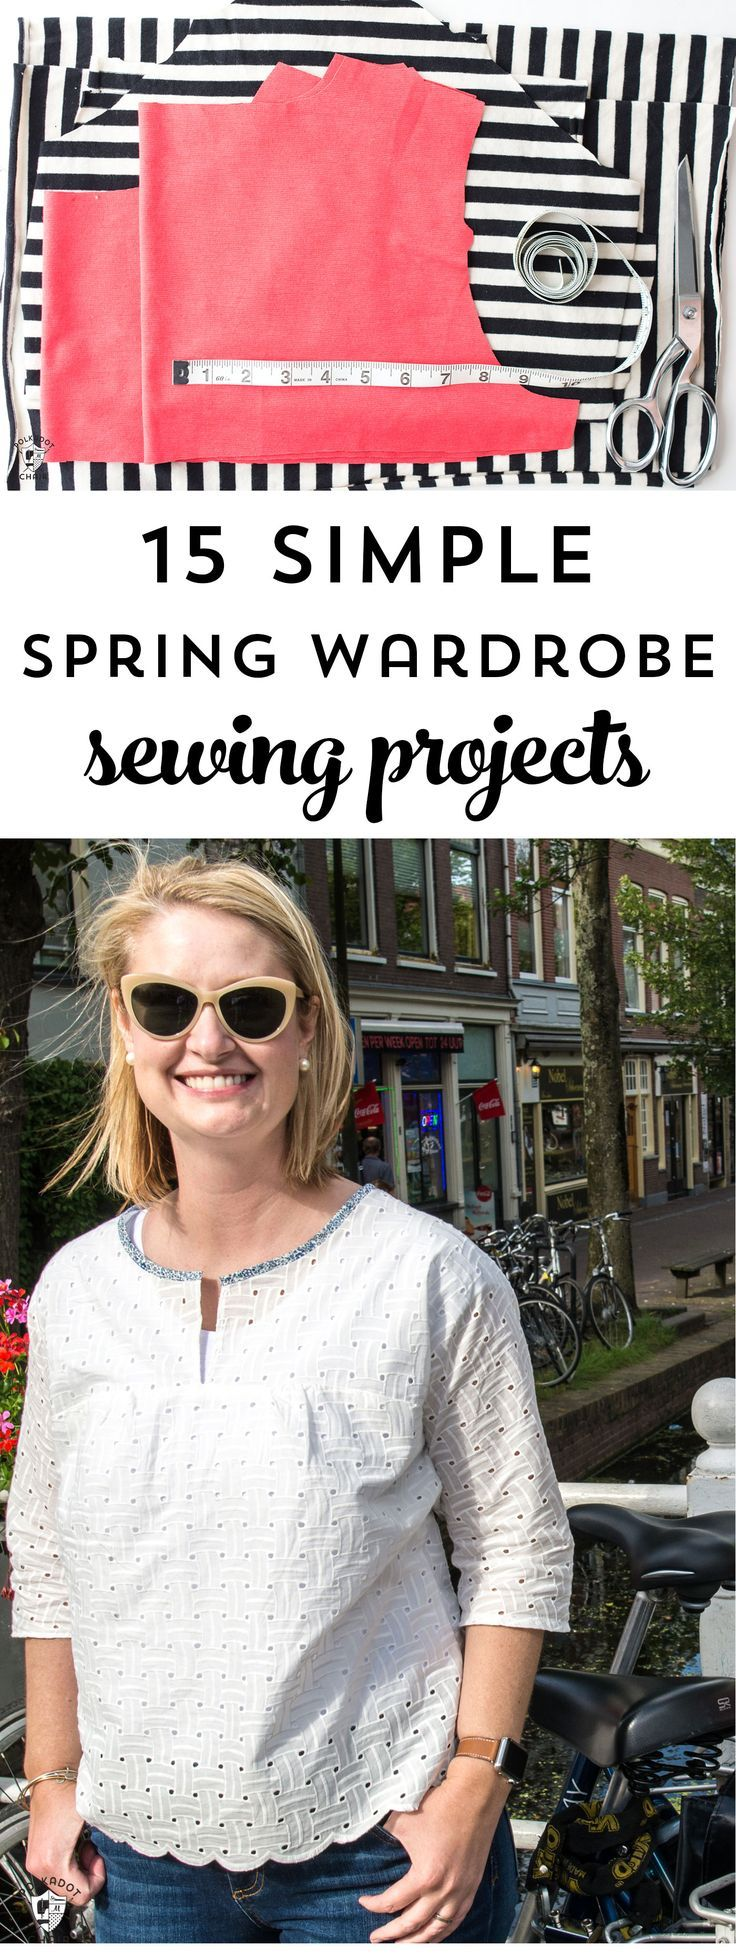 15 Simple Spring Wardrobe Sewing projects; from fun spring tops to simple summer...